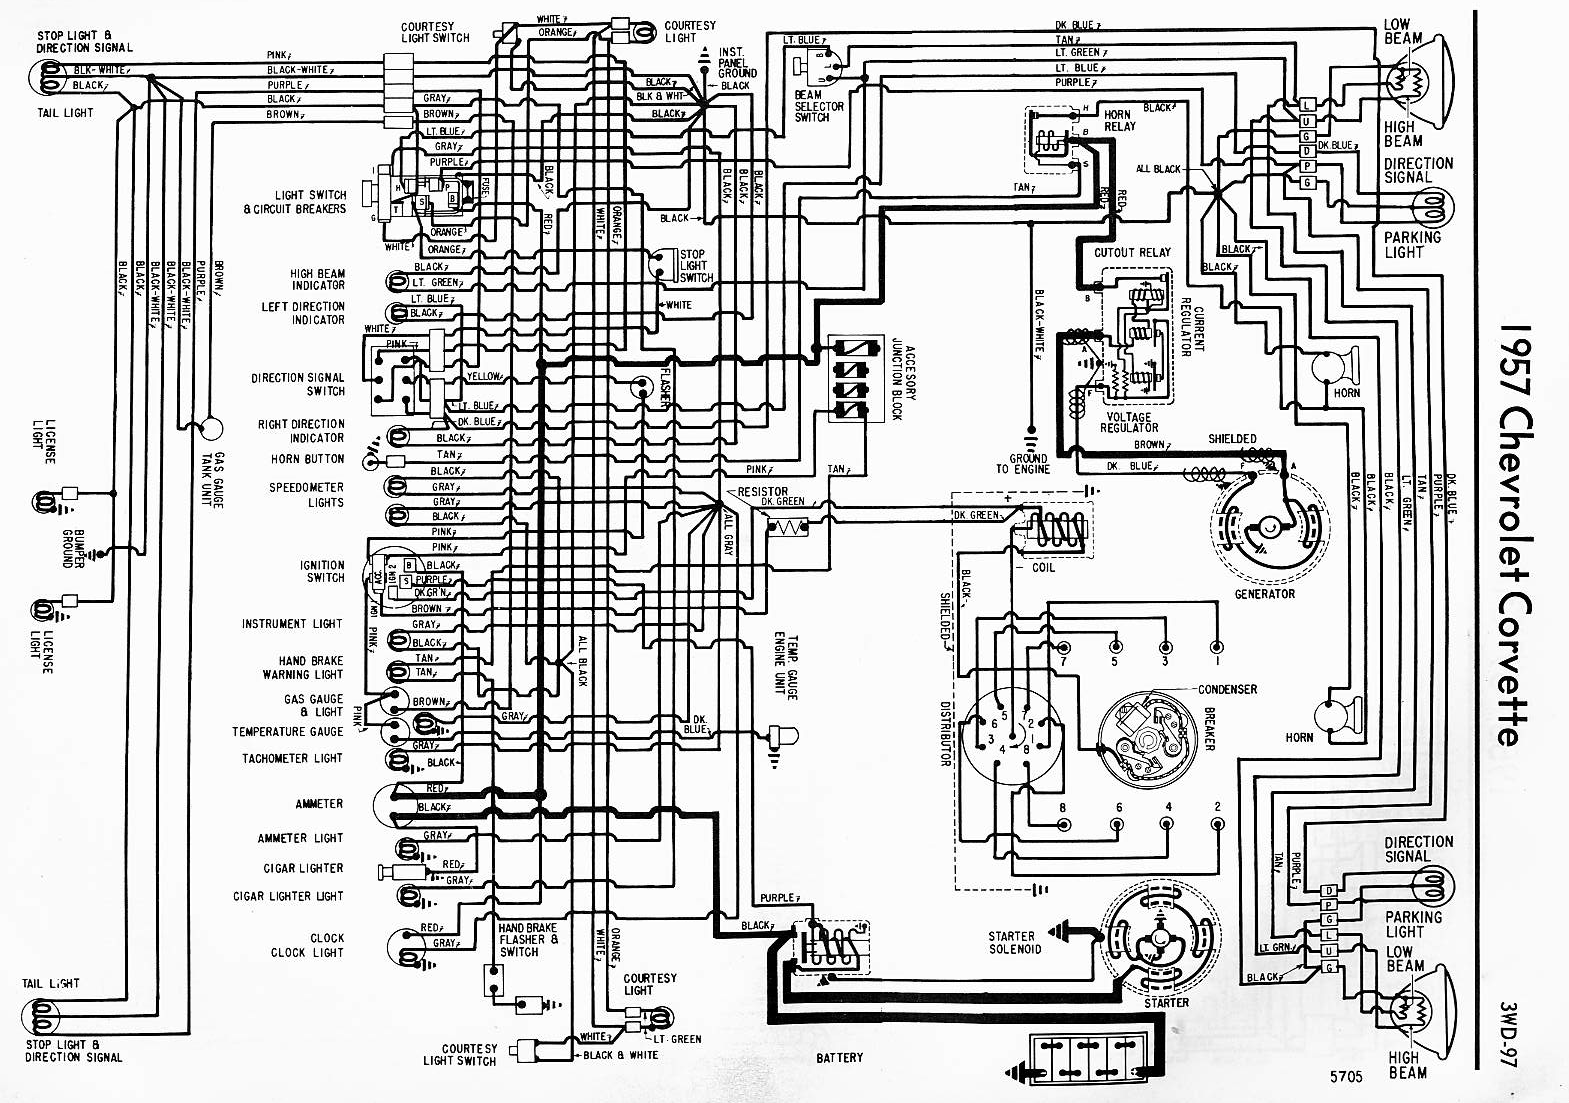 57 corvettte tracer schematic best one 1957 corvette wiring diagram willcox corvette, inc 1971 corvette wiring diagram at honlapkeszites.co